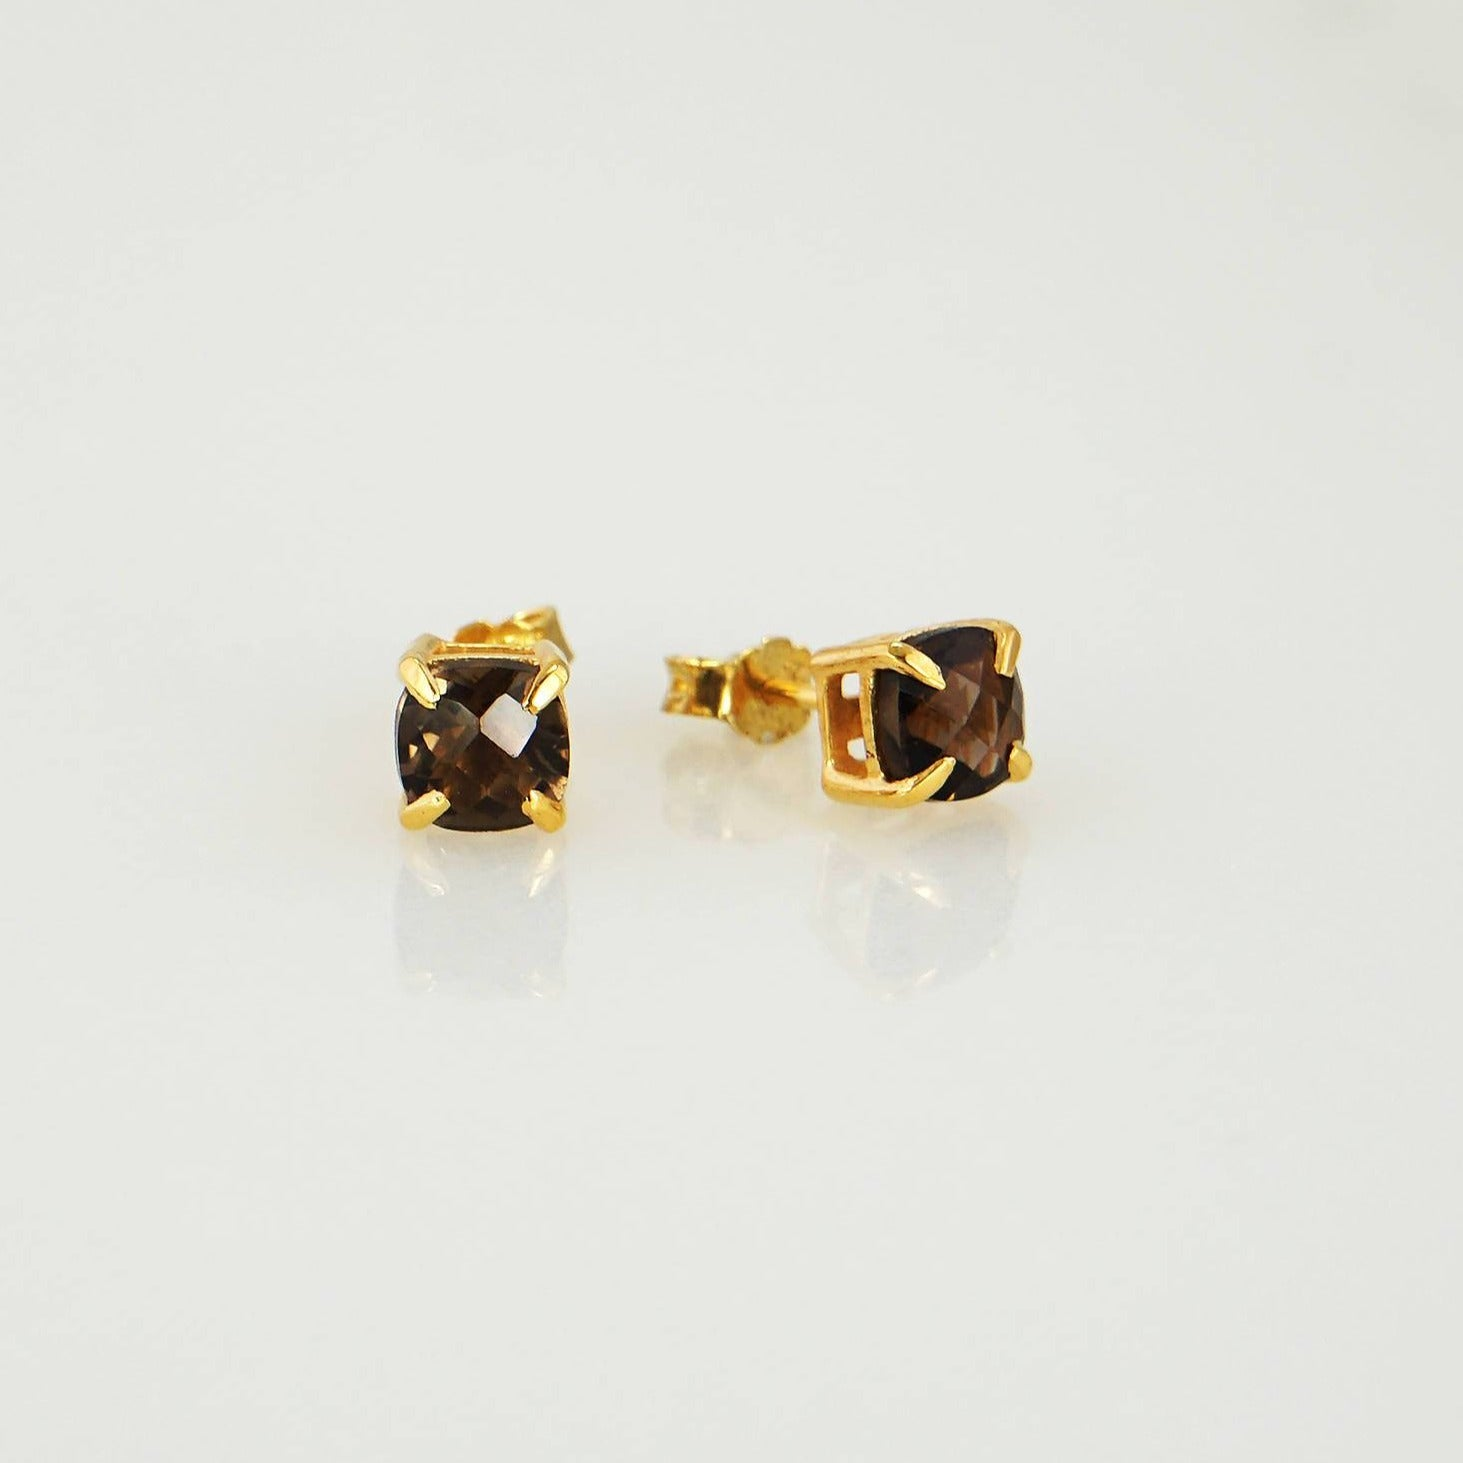 Minimalist Earring studs, Smoky Quartz studs, Gems Studs Earring, Gemstone Studs, Cushion Studs, Tiny Studs, Small Stone Studs Earrings